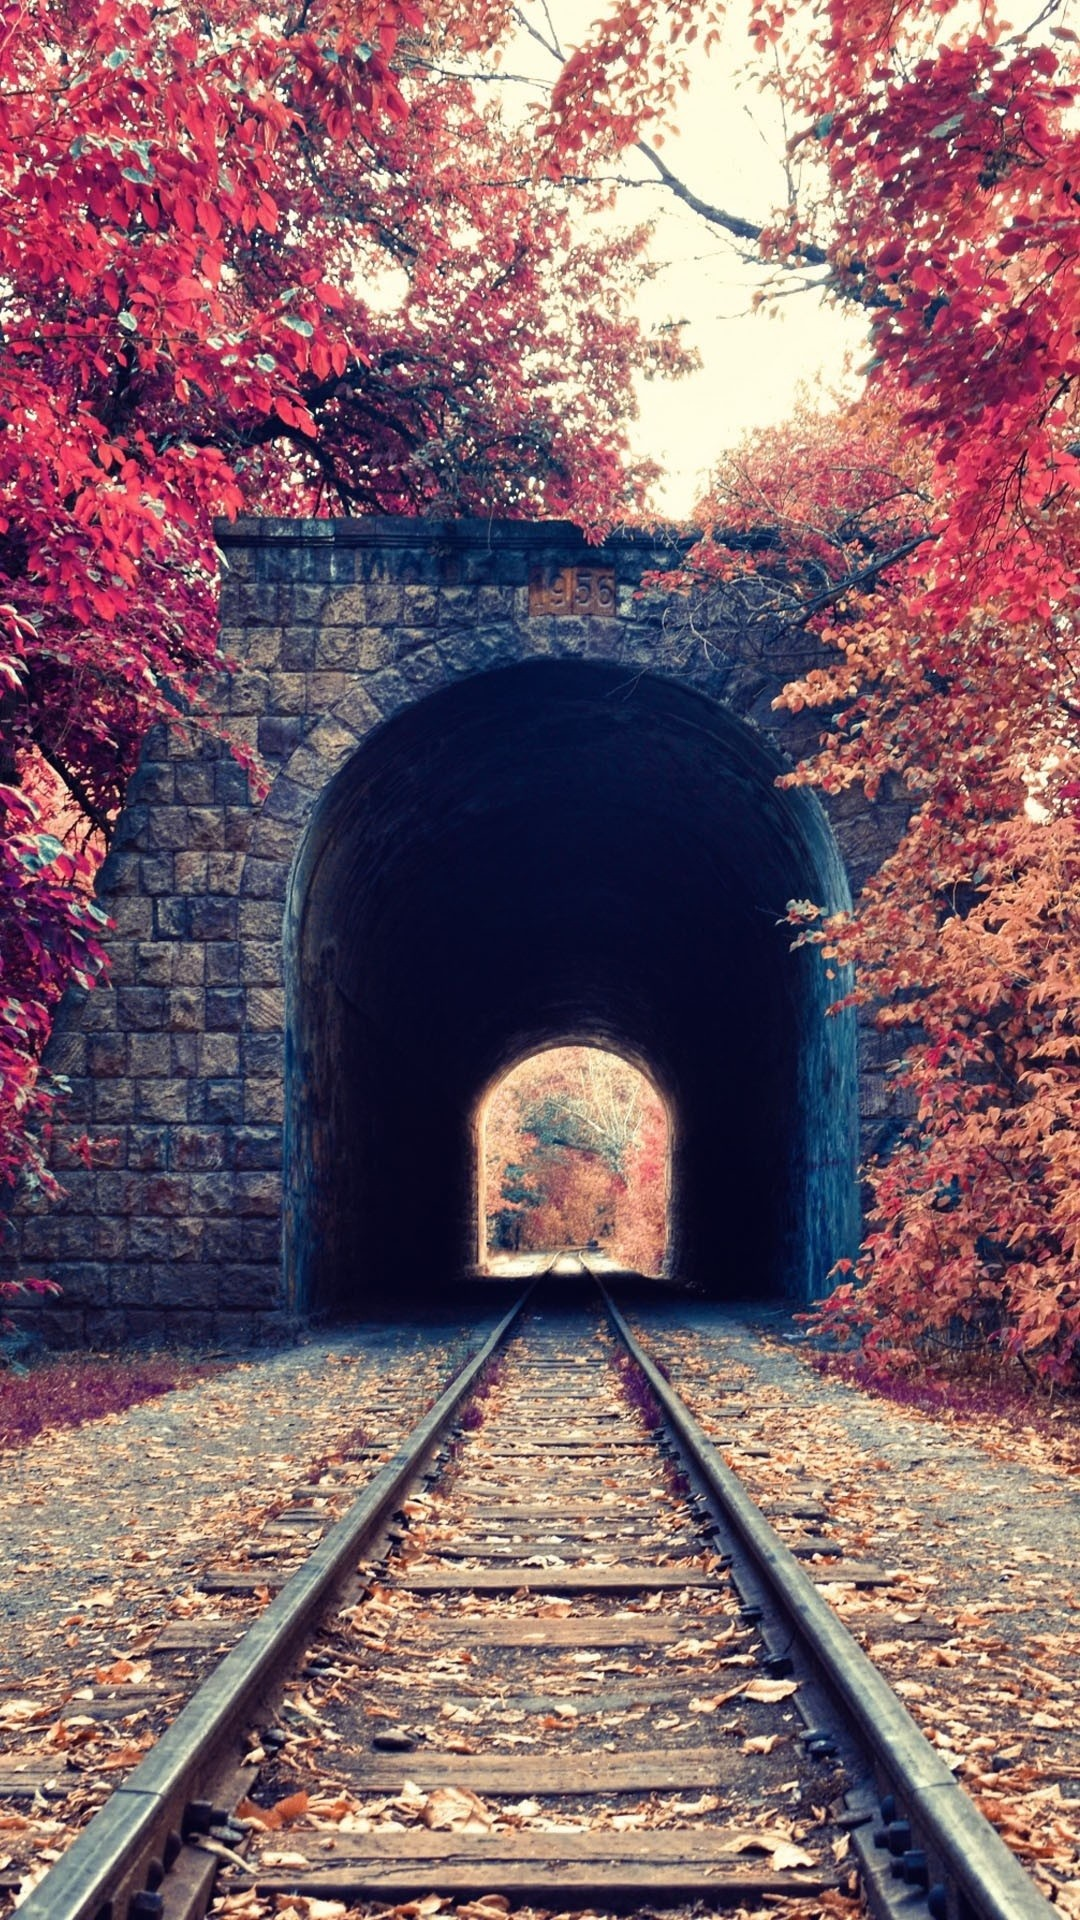 Iphone 6s wallpaper tumblr hd - A Tunnel In The Woods